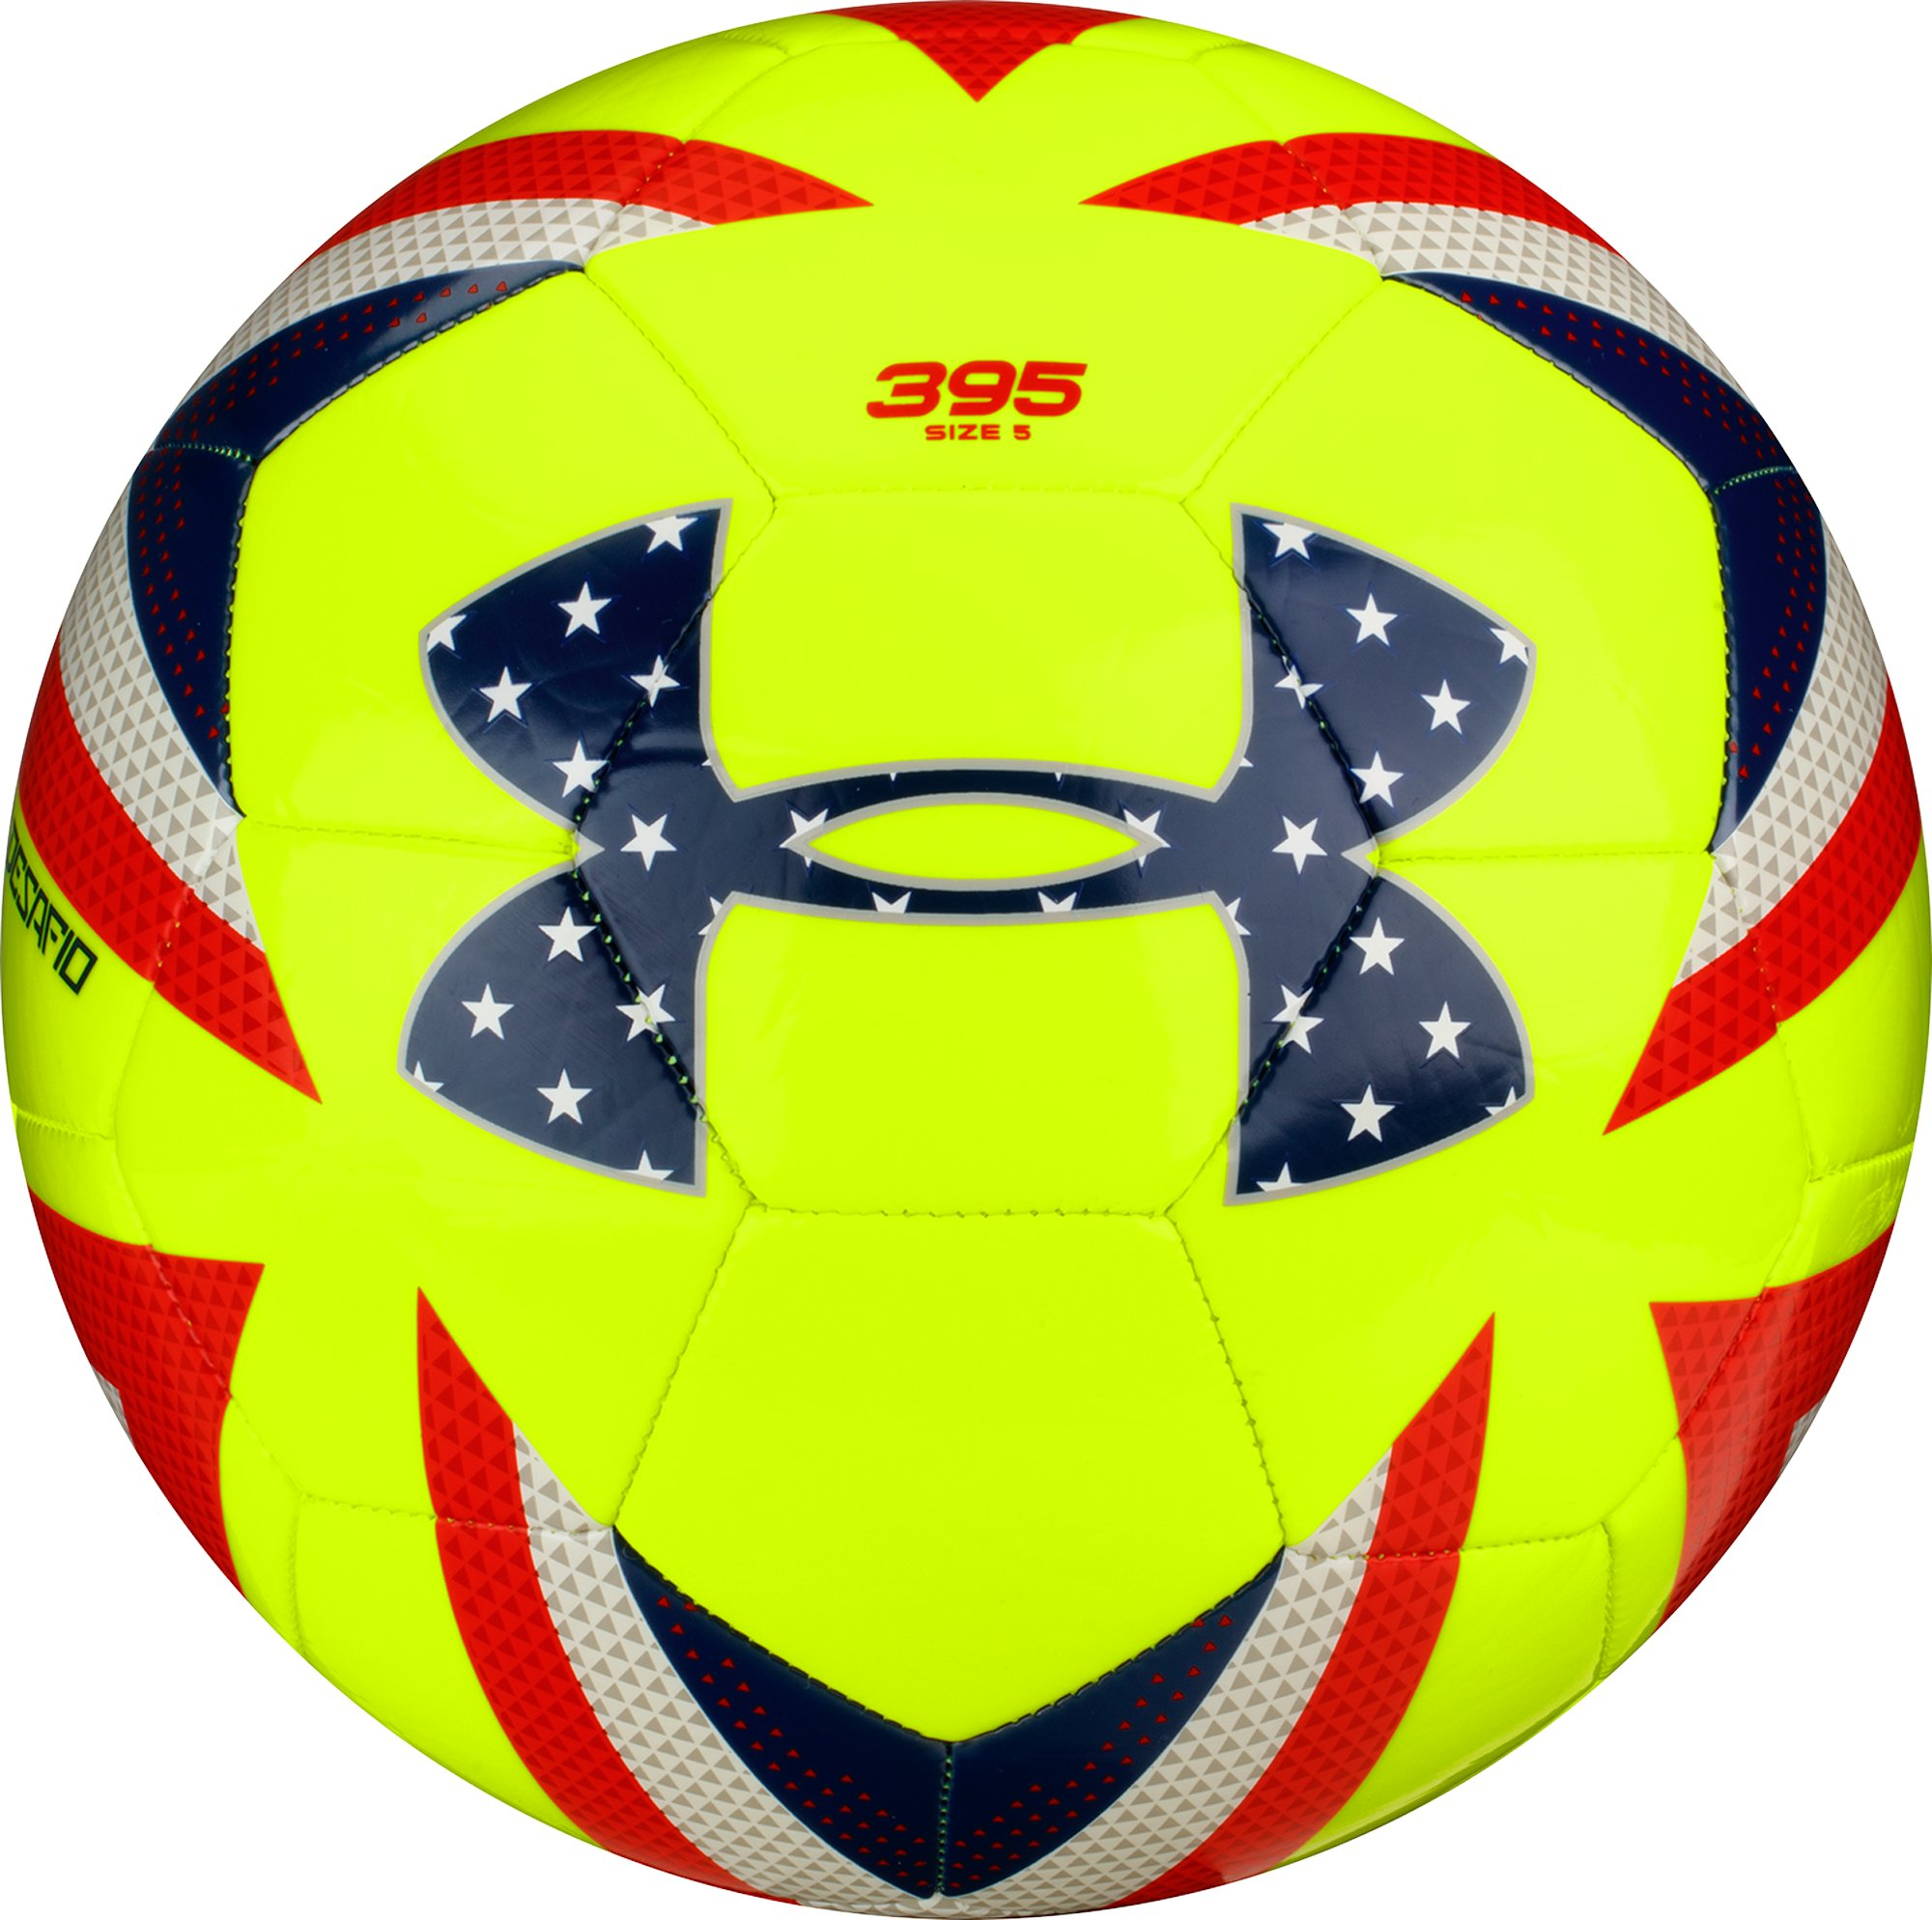 UA Desafio 395 Soccer Ball, High-Vis Yellow